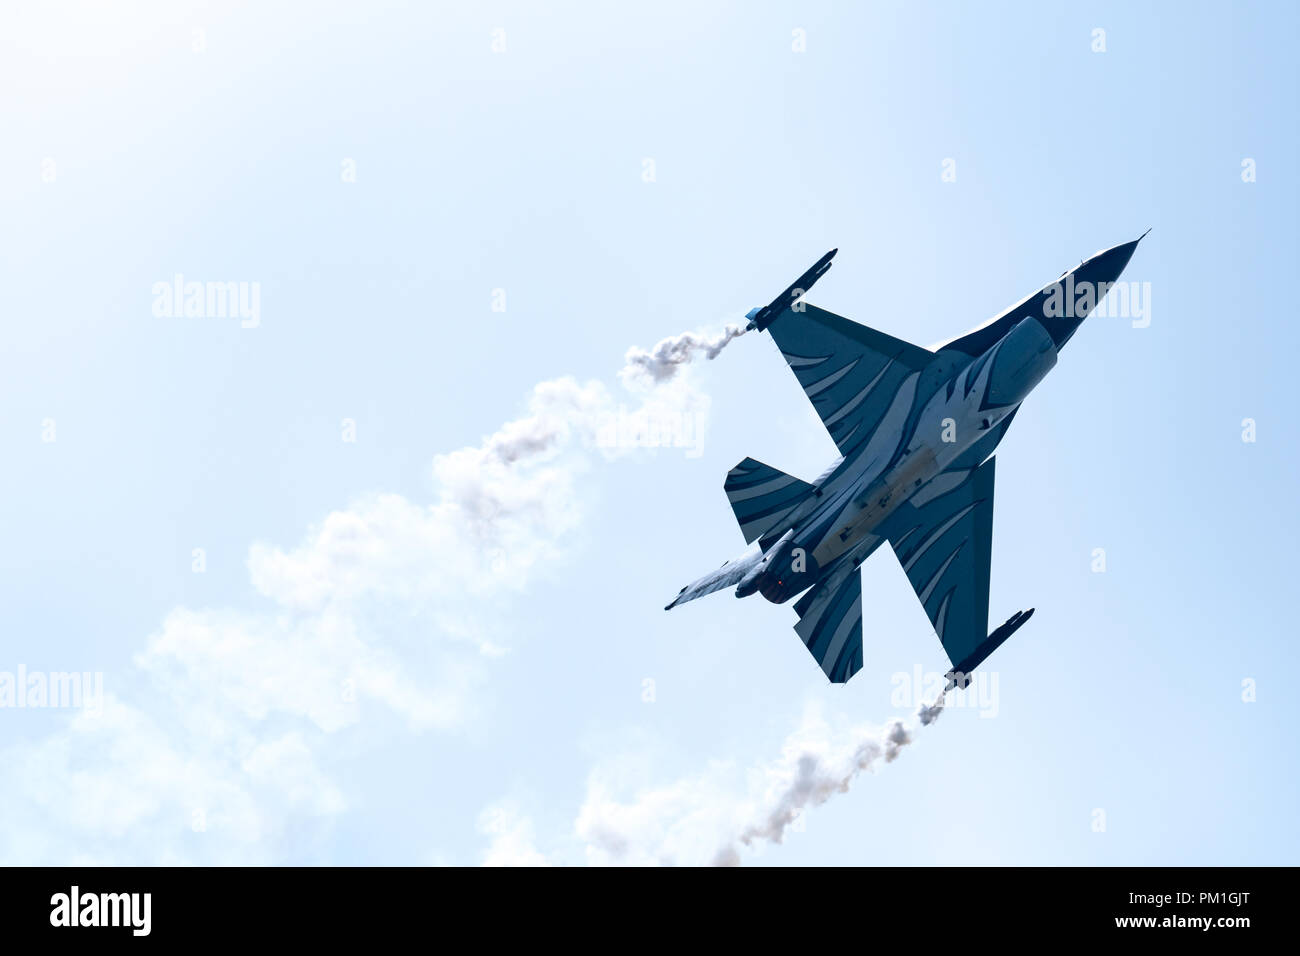 TELFORD, UK, JUNE 10, 2018 - A photograph documenting the Belgian Air Force's F-16 Fighting Falcon display in the skies over the RAF Cosford Air Show  - Stock Image